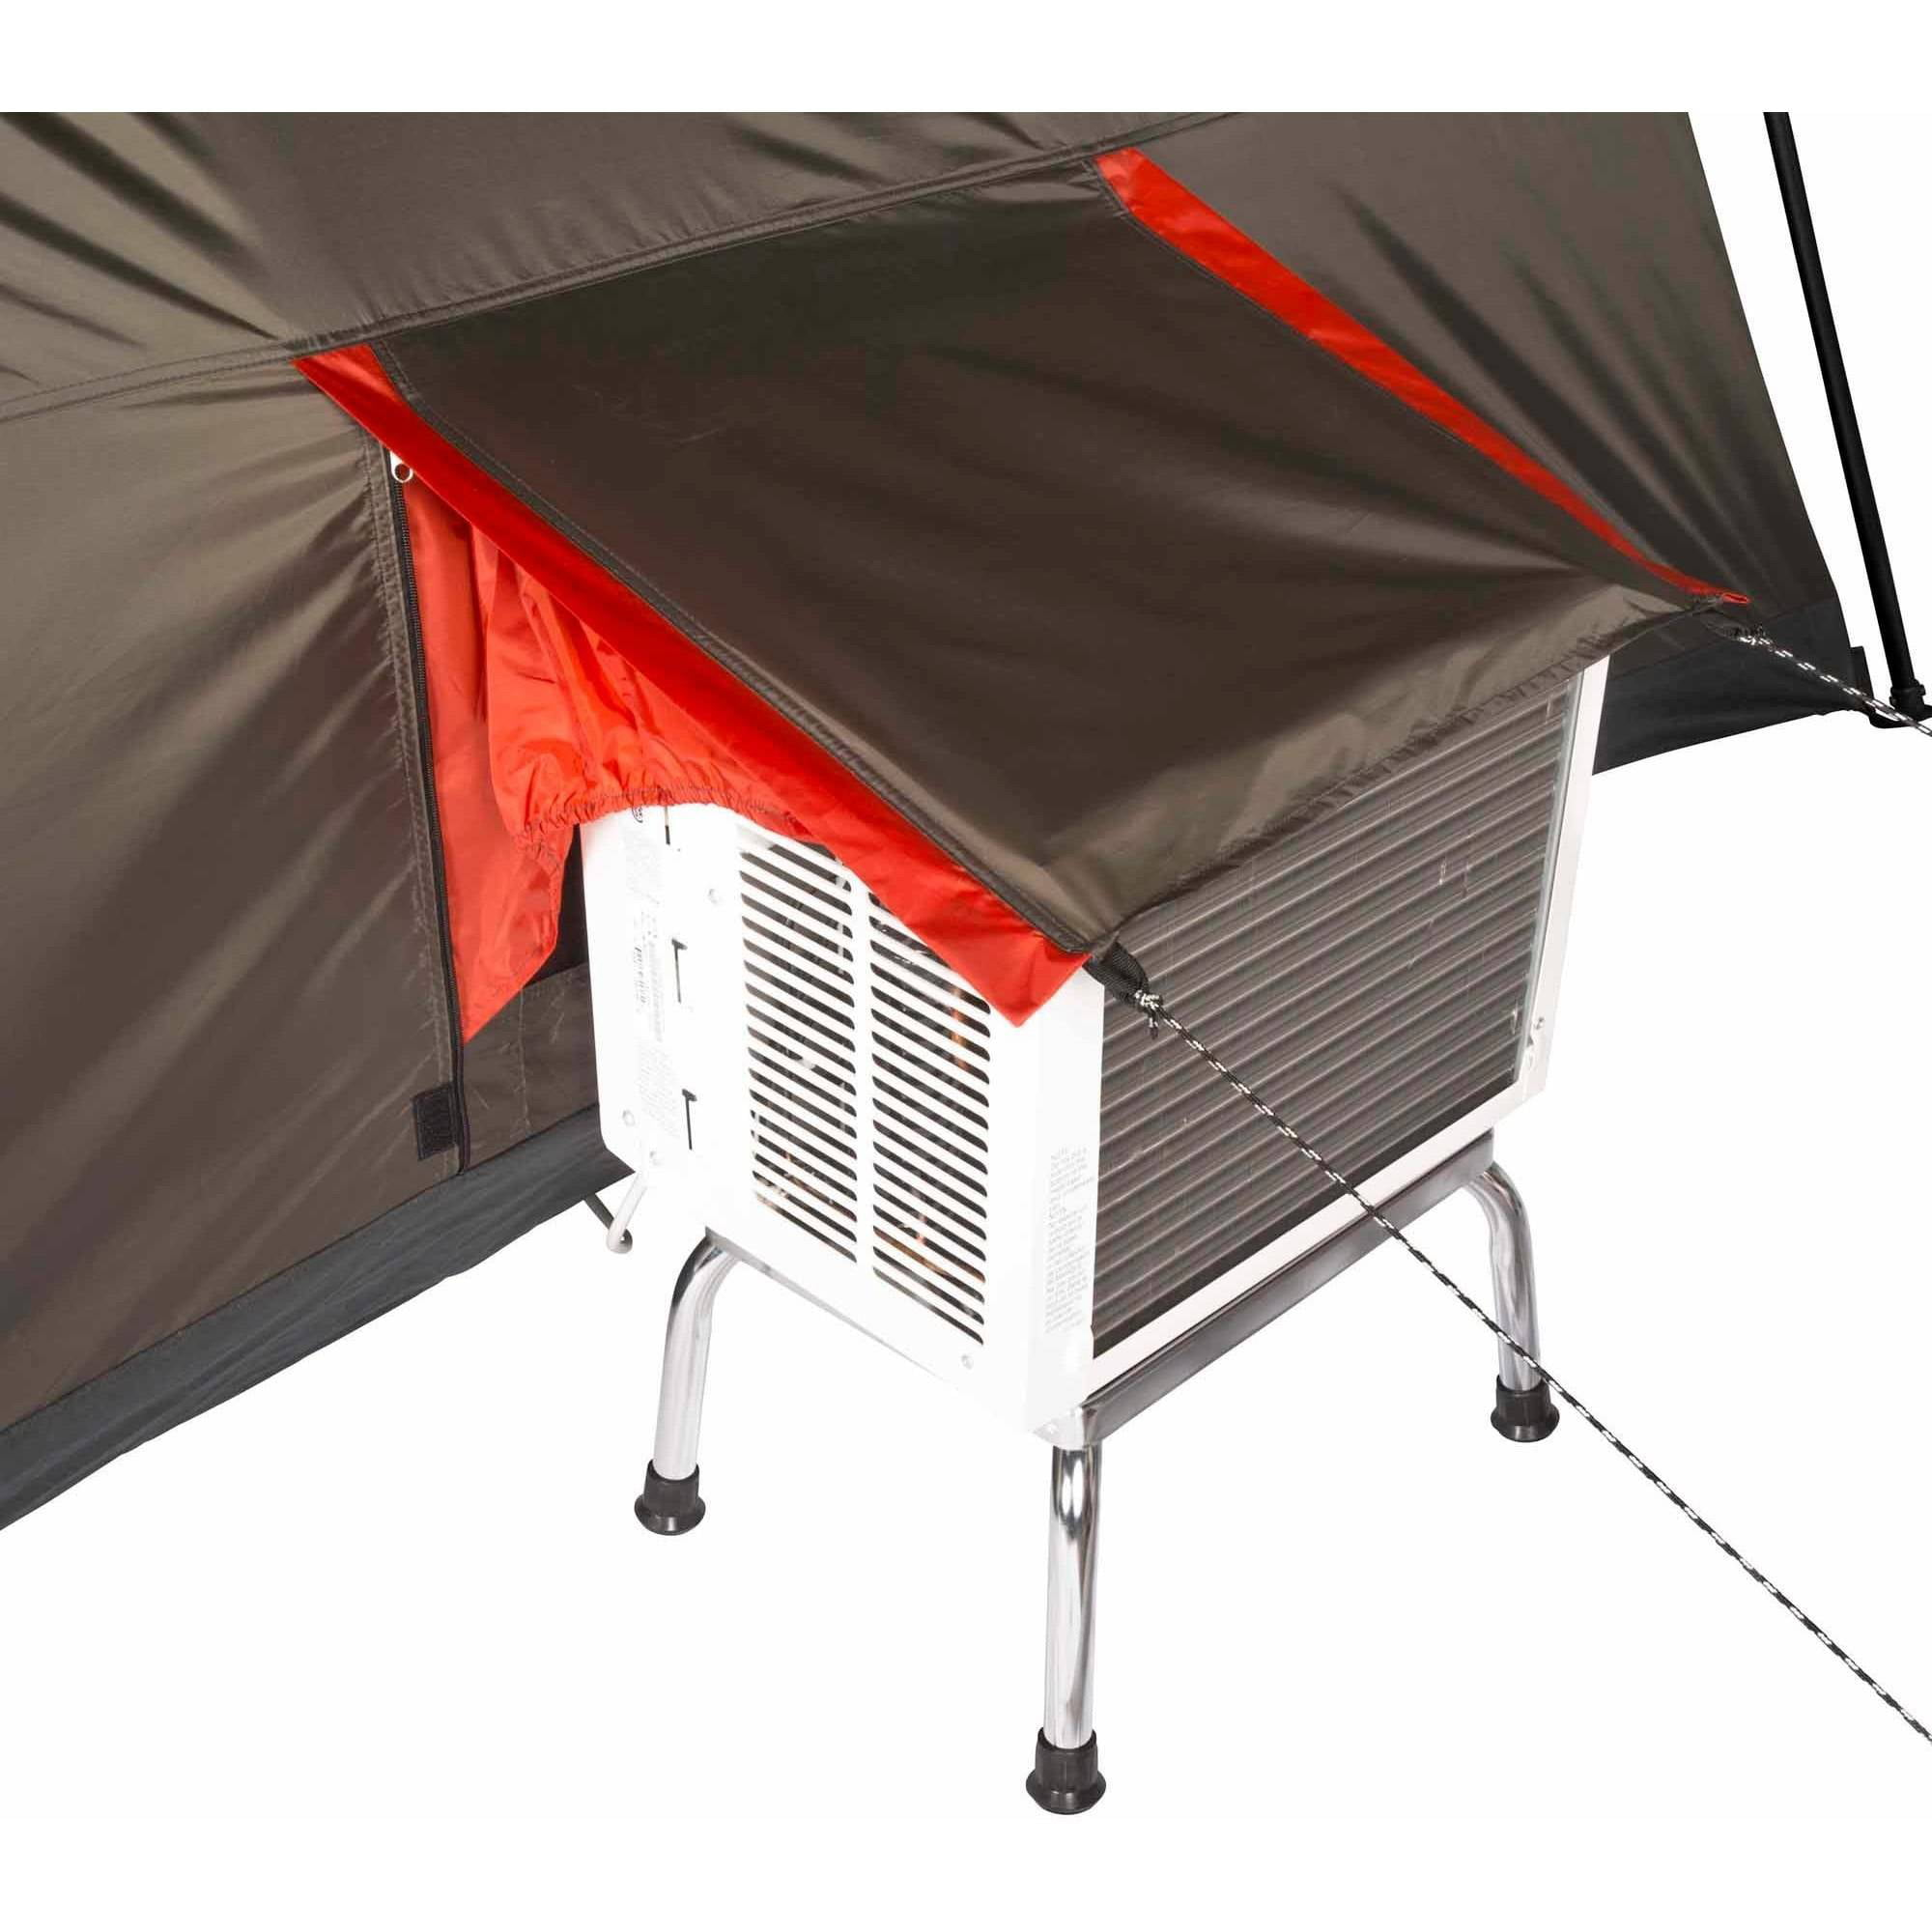 Ozark trail shower tent